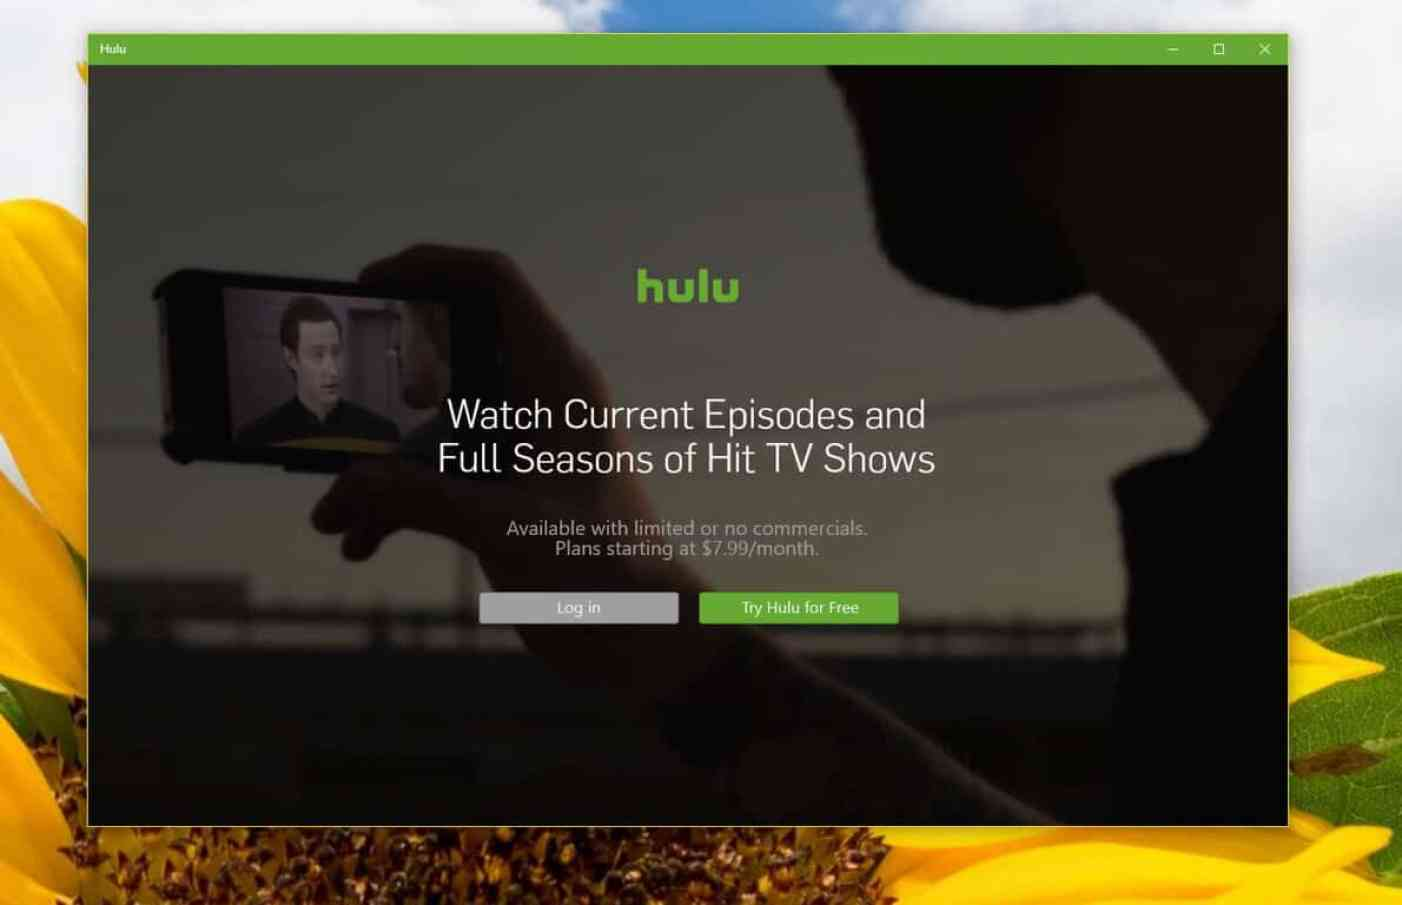 Windows 10 Hulu app